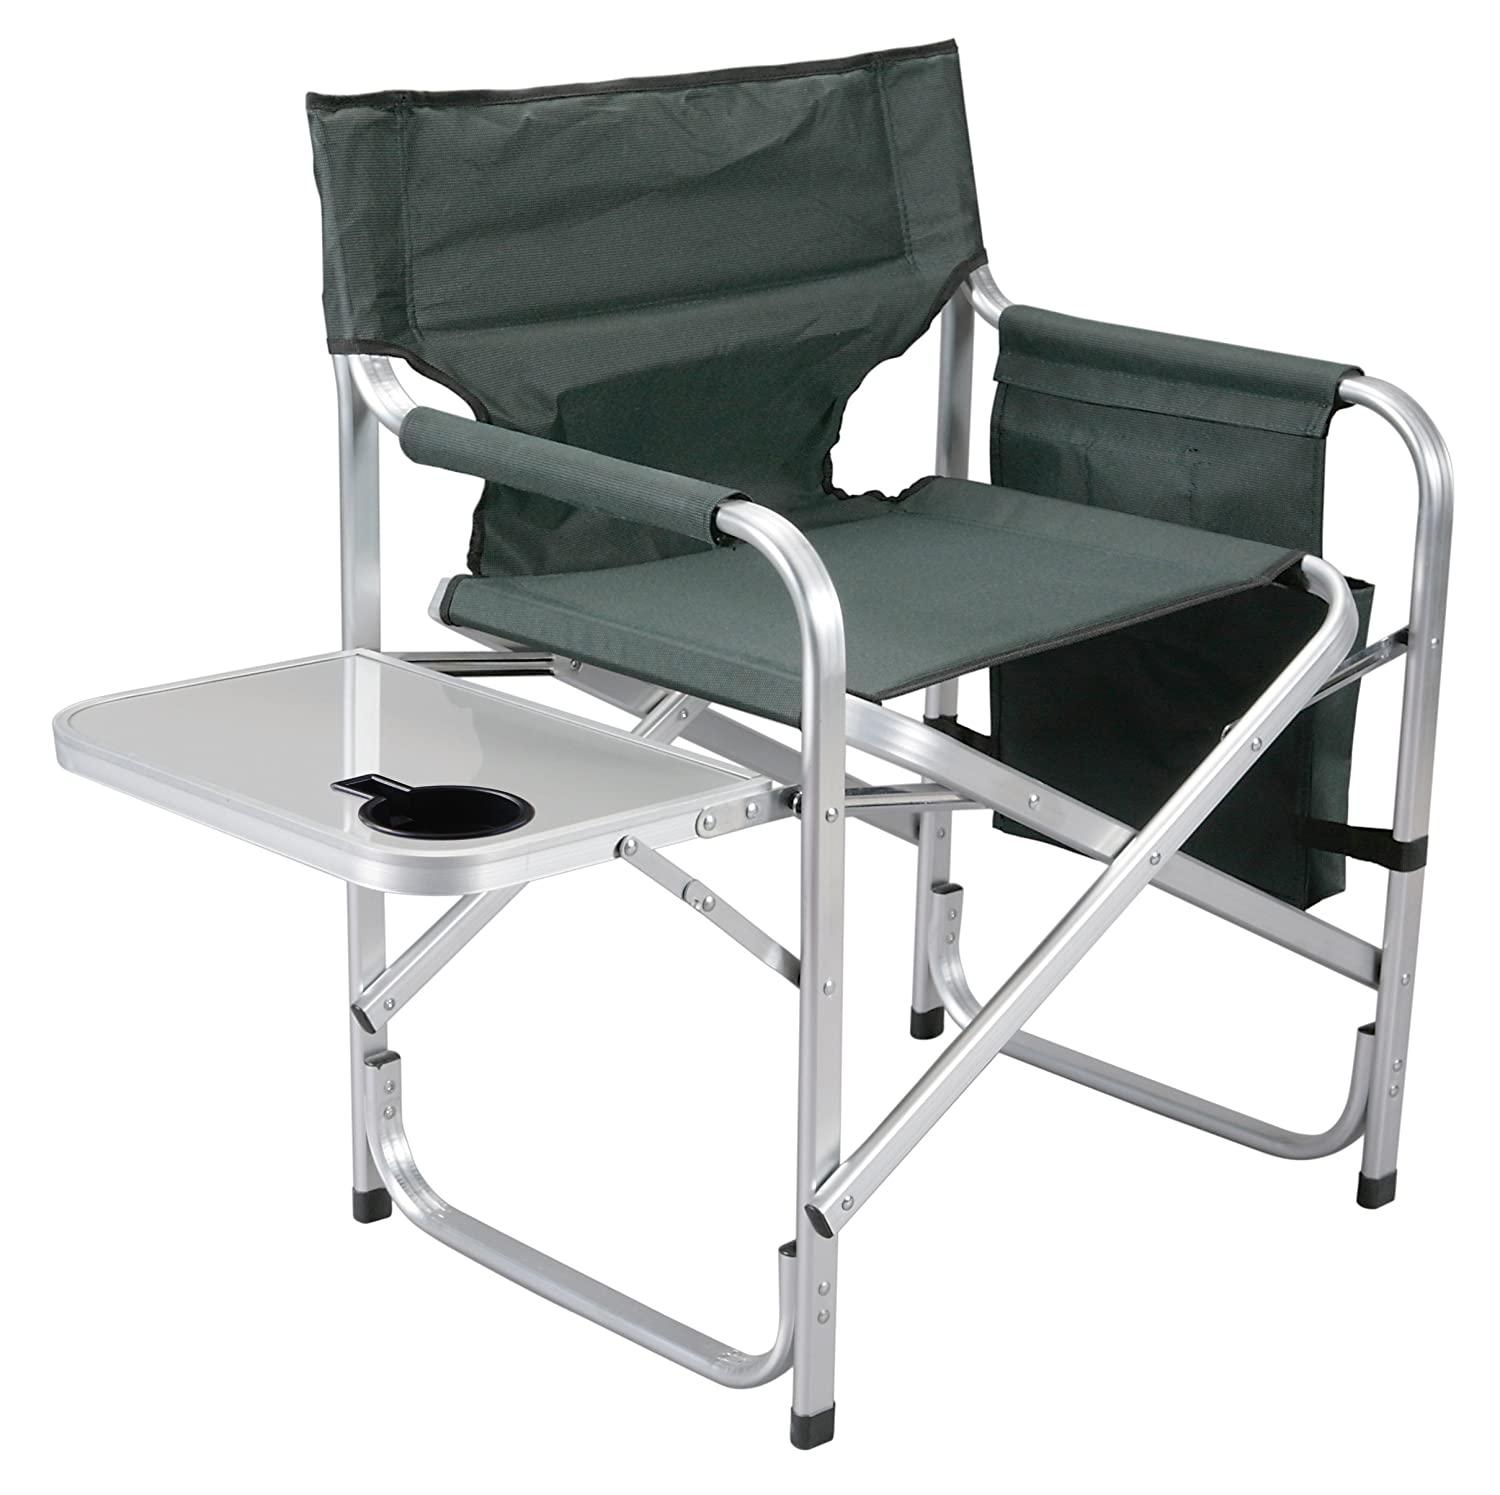 Charmant Amazon.com : Faulkner Aluminum Director Chair With Folding Tray And Cup  Holder, Green : Outdoor And Patio Furniture : Garden U0026 Outdoor